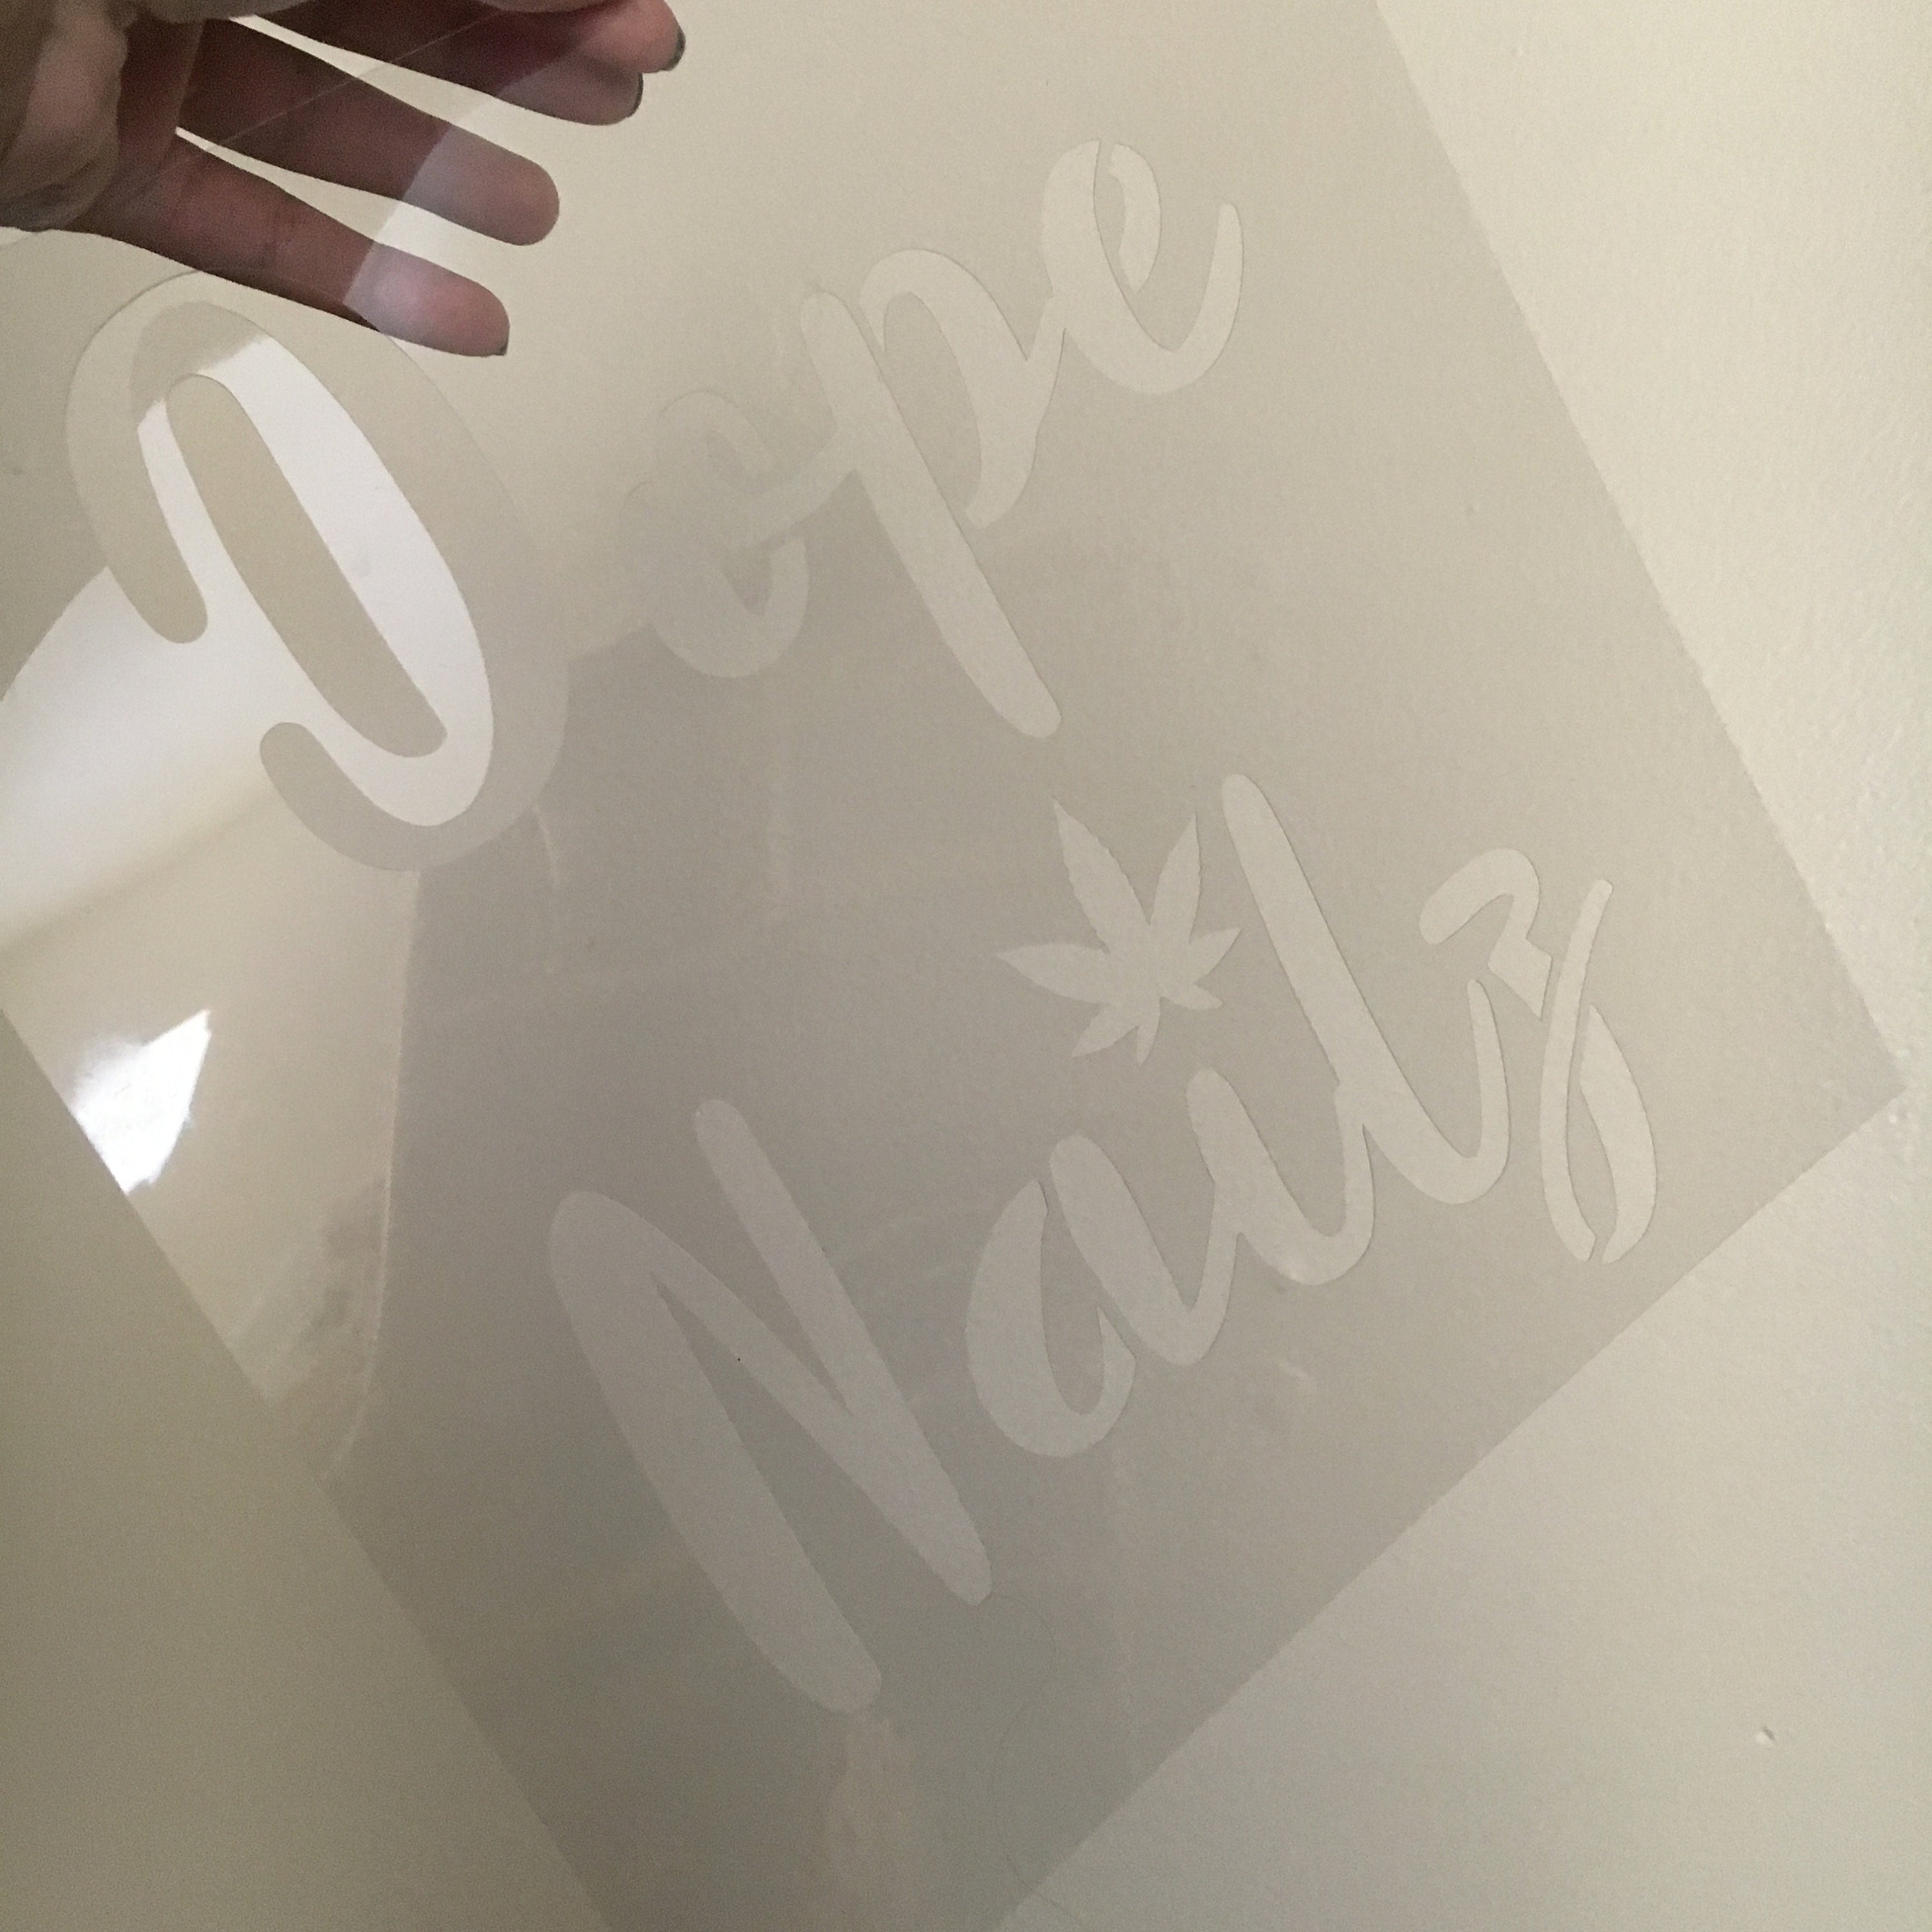 Dope Nailz added a photo of their purchase